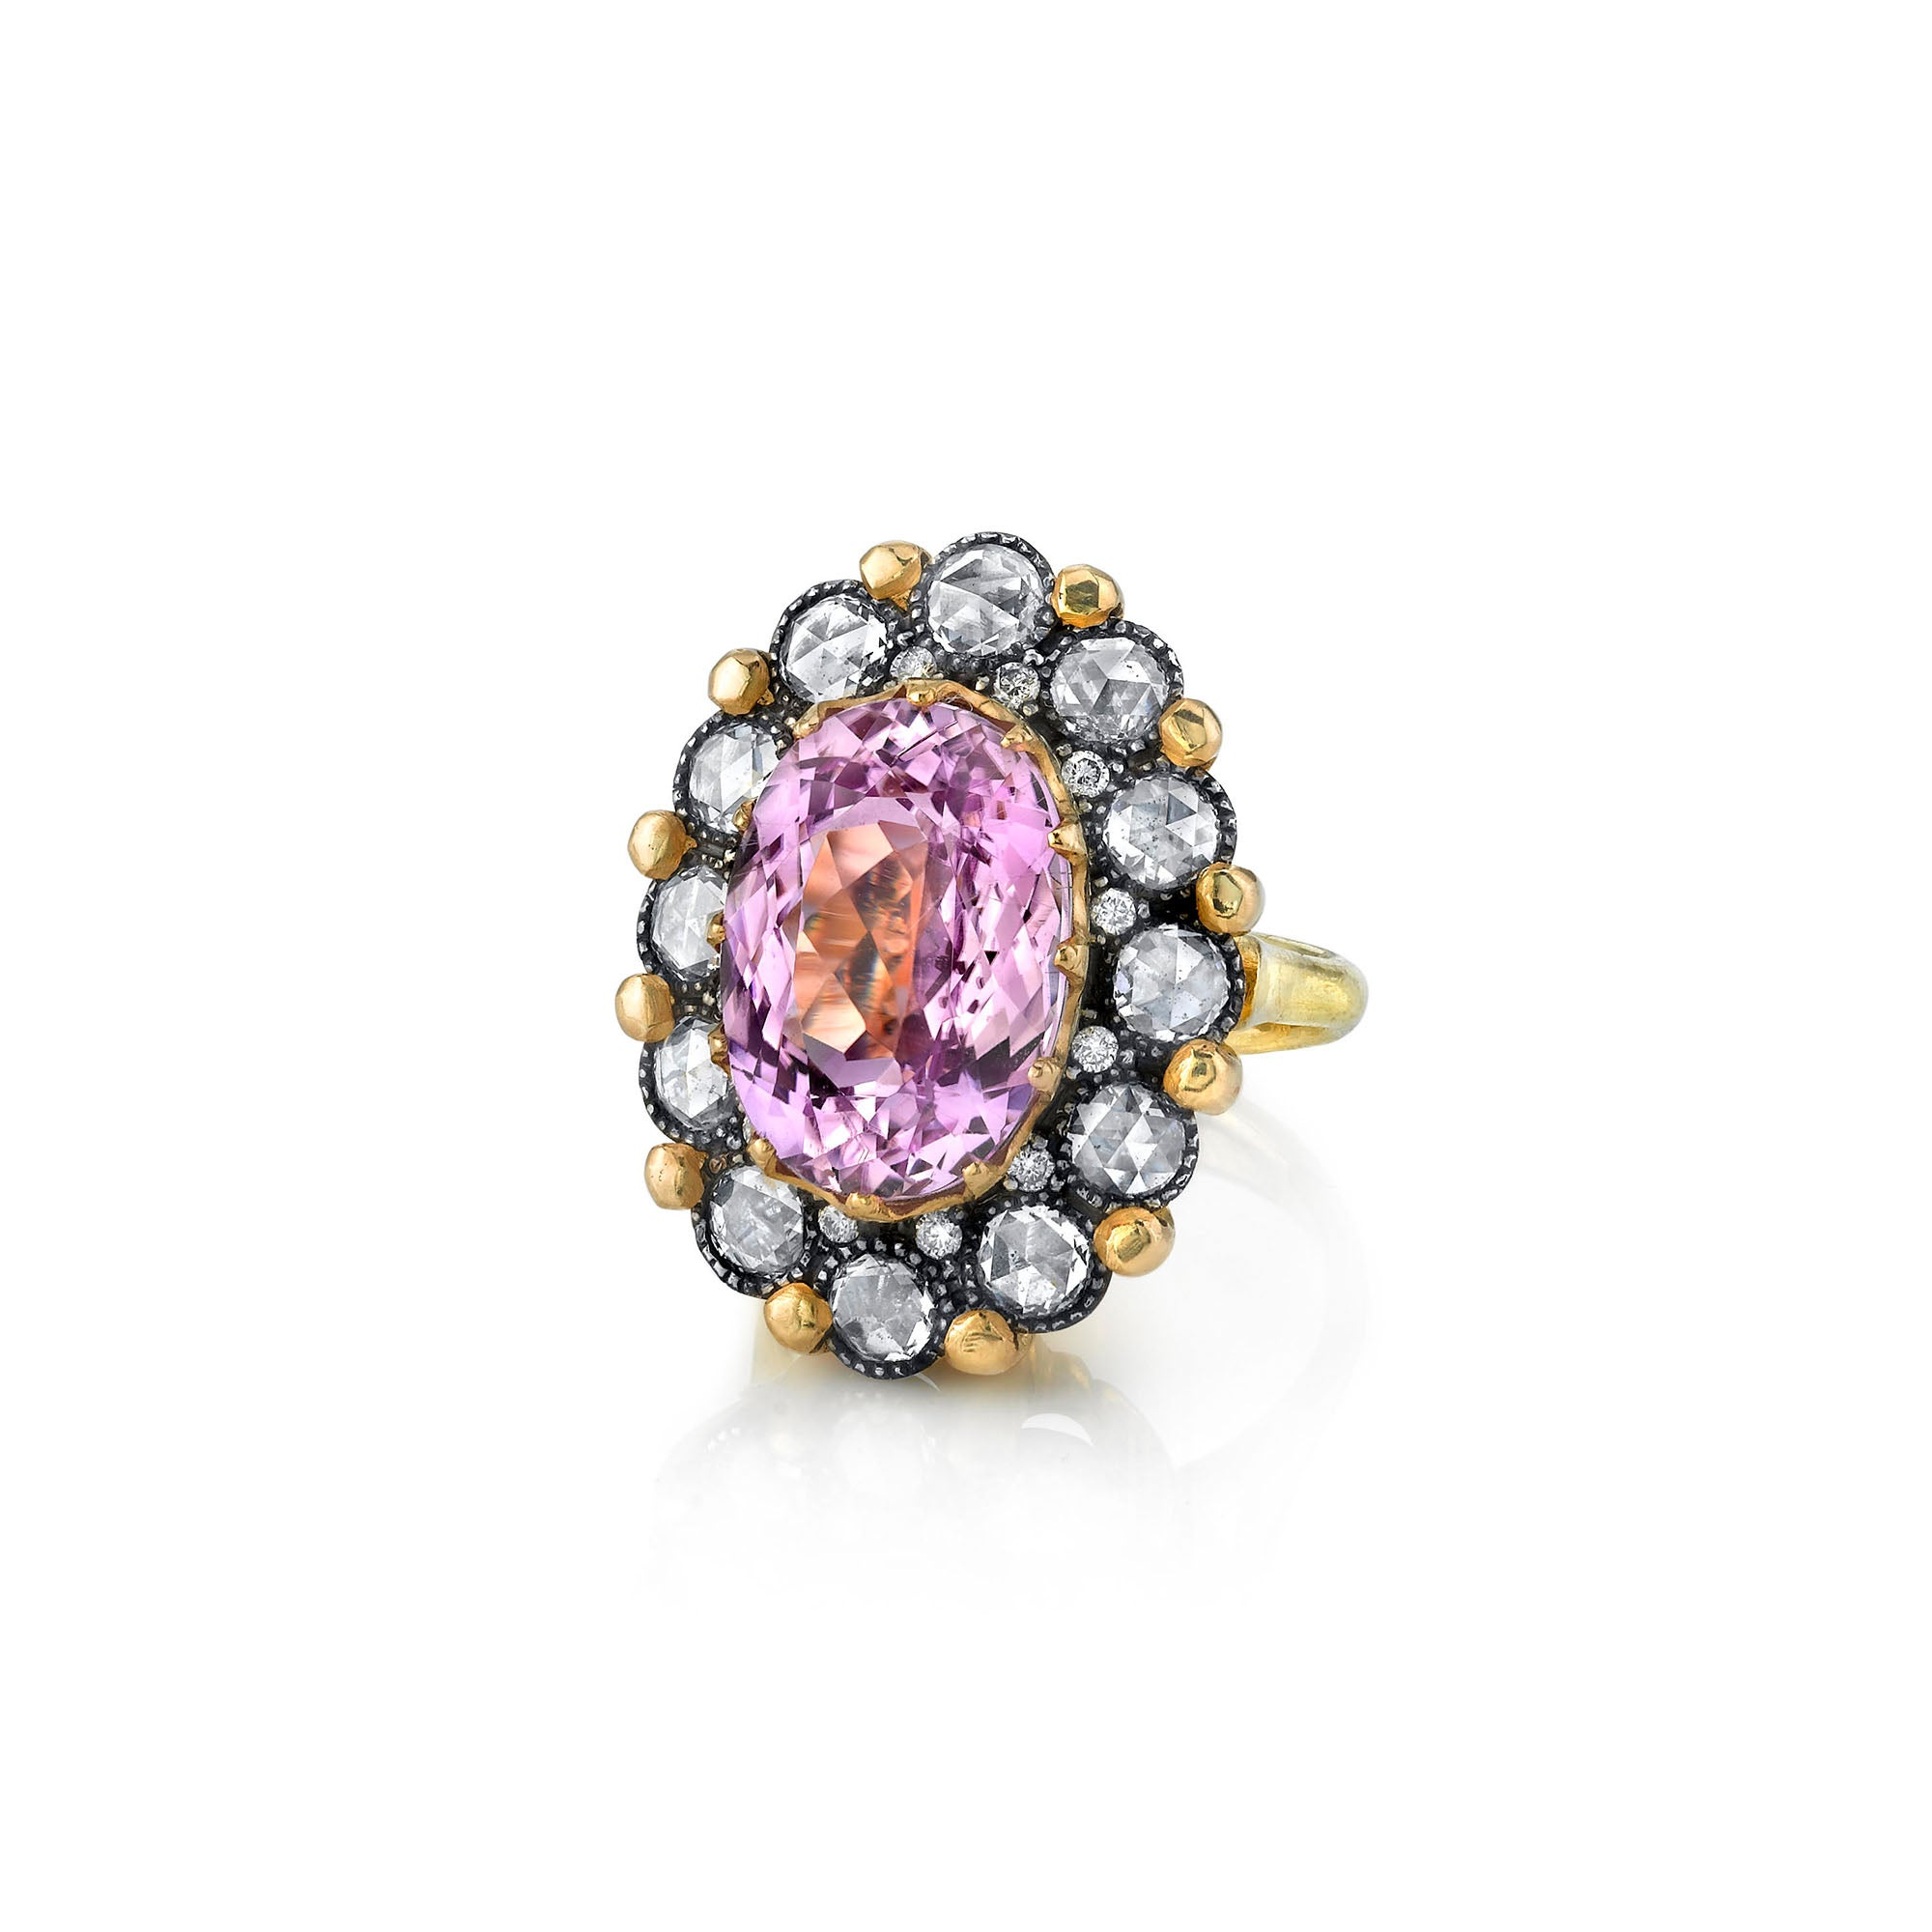 Arman Sarkisyan pink kunzite engagement ring